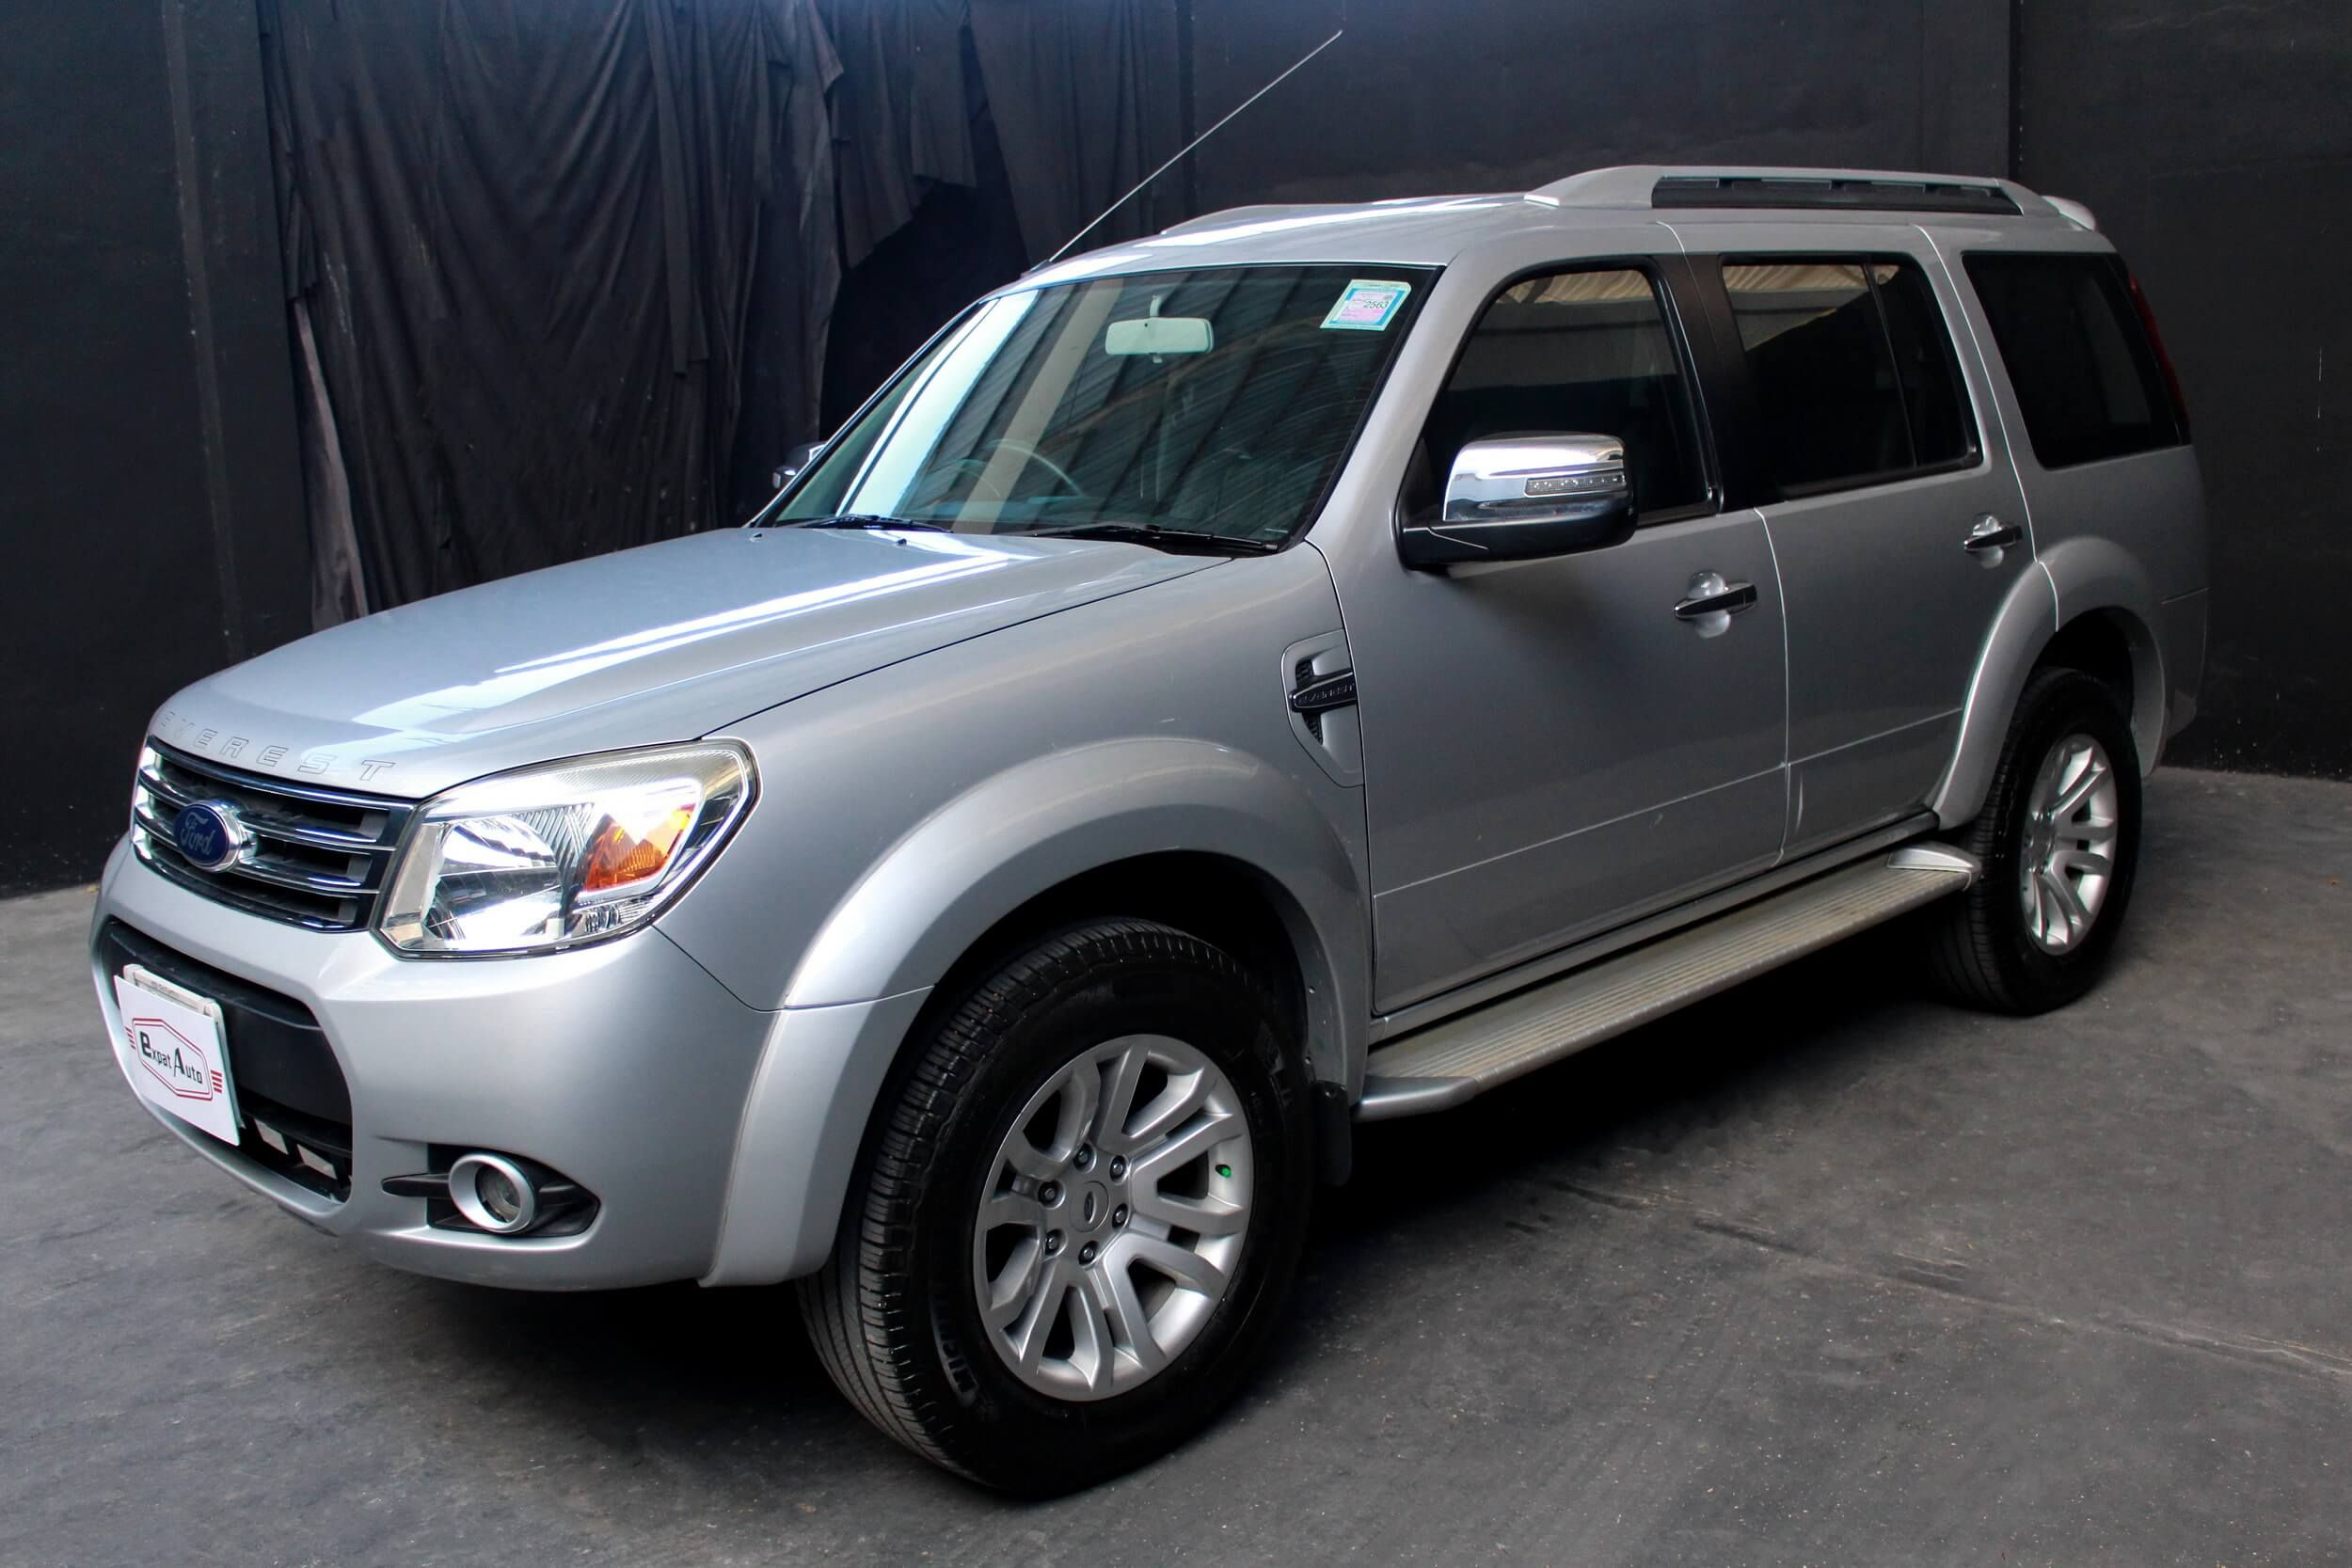 2014 Mfd 14 Ford Everest 2 5 Ltd Tdci A T In 2020 Ford Ev Ford Used Cars